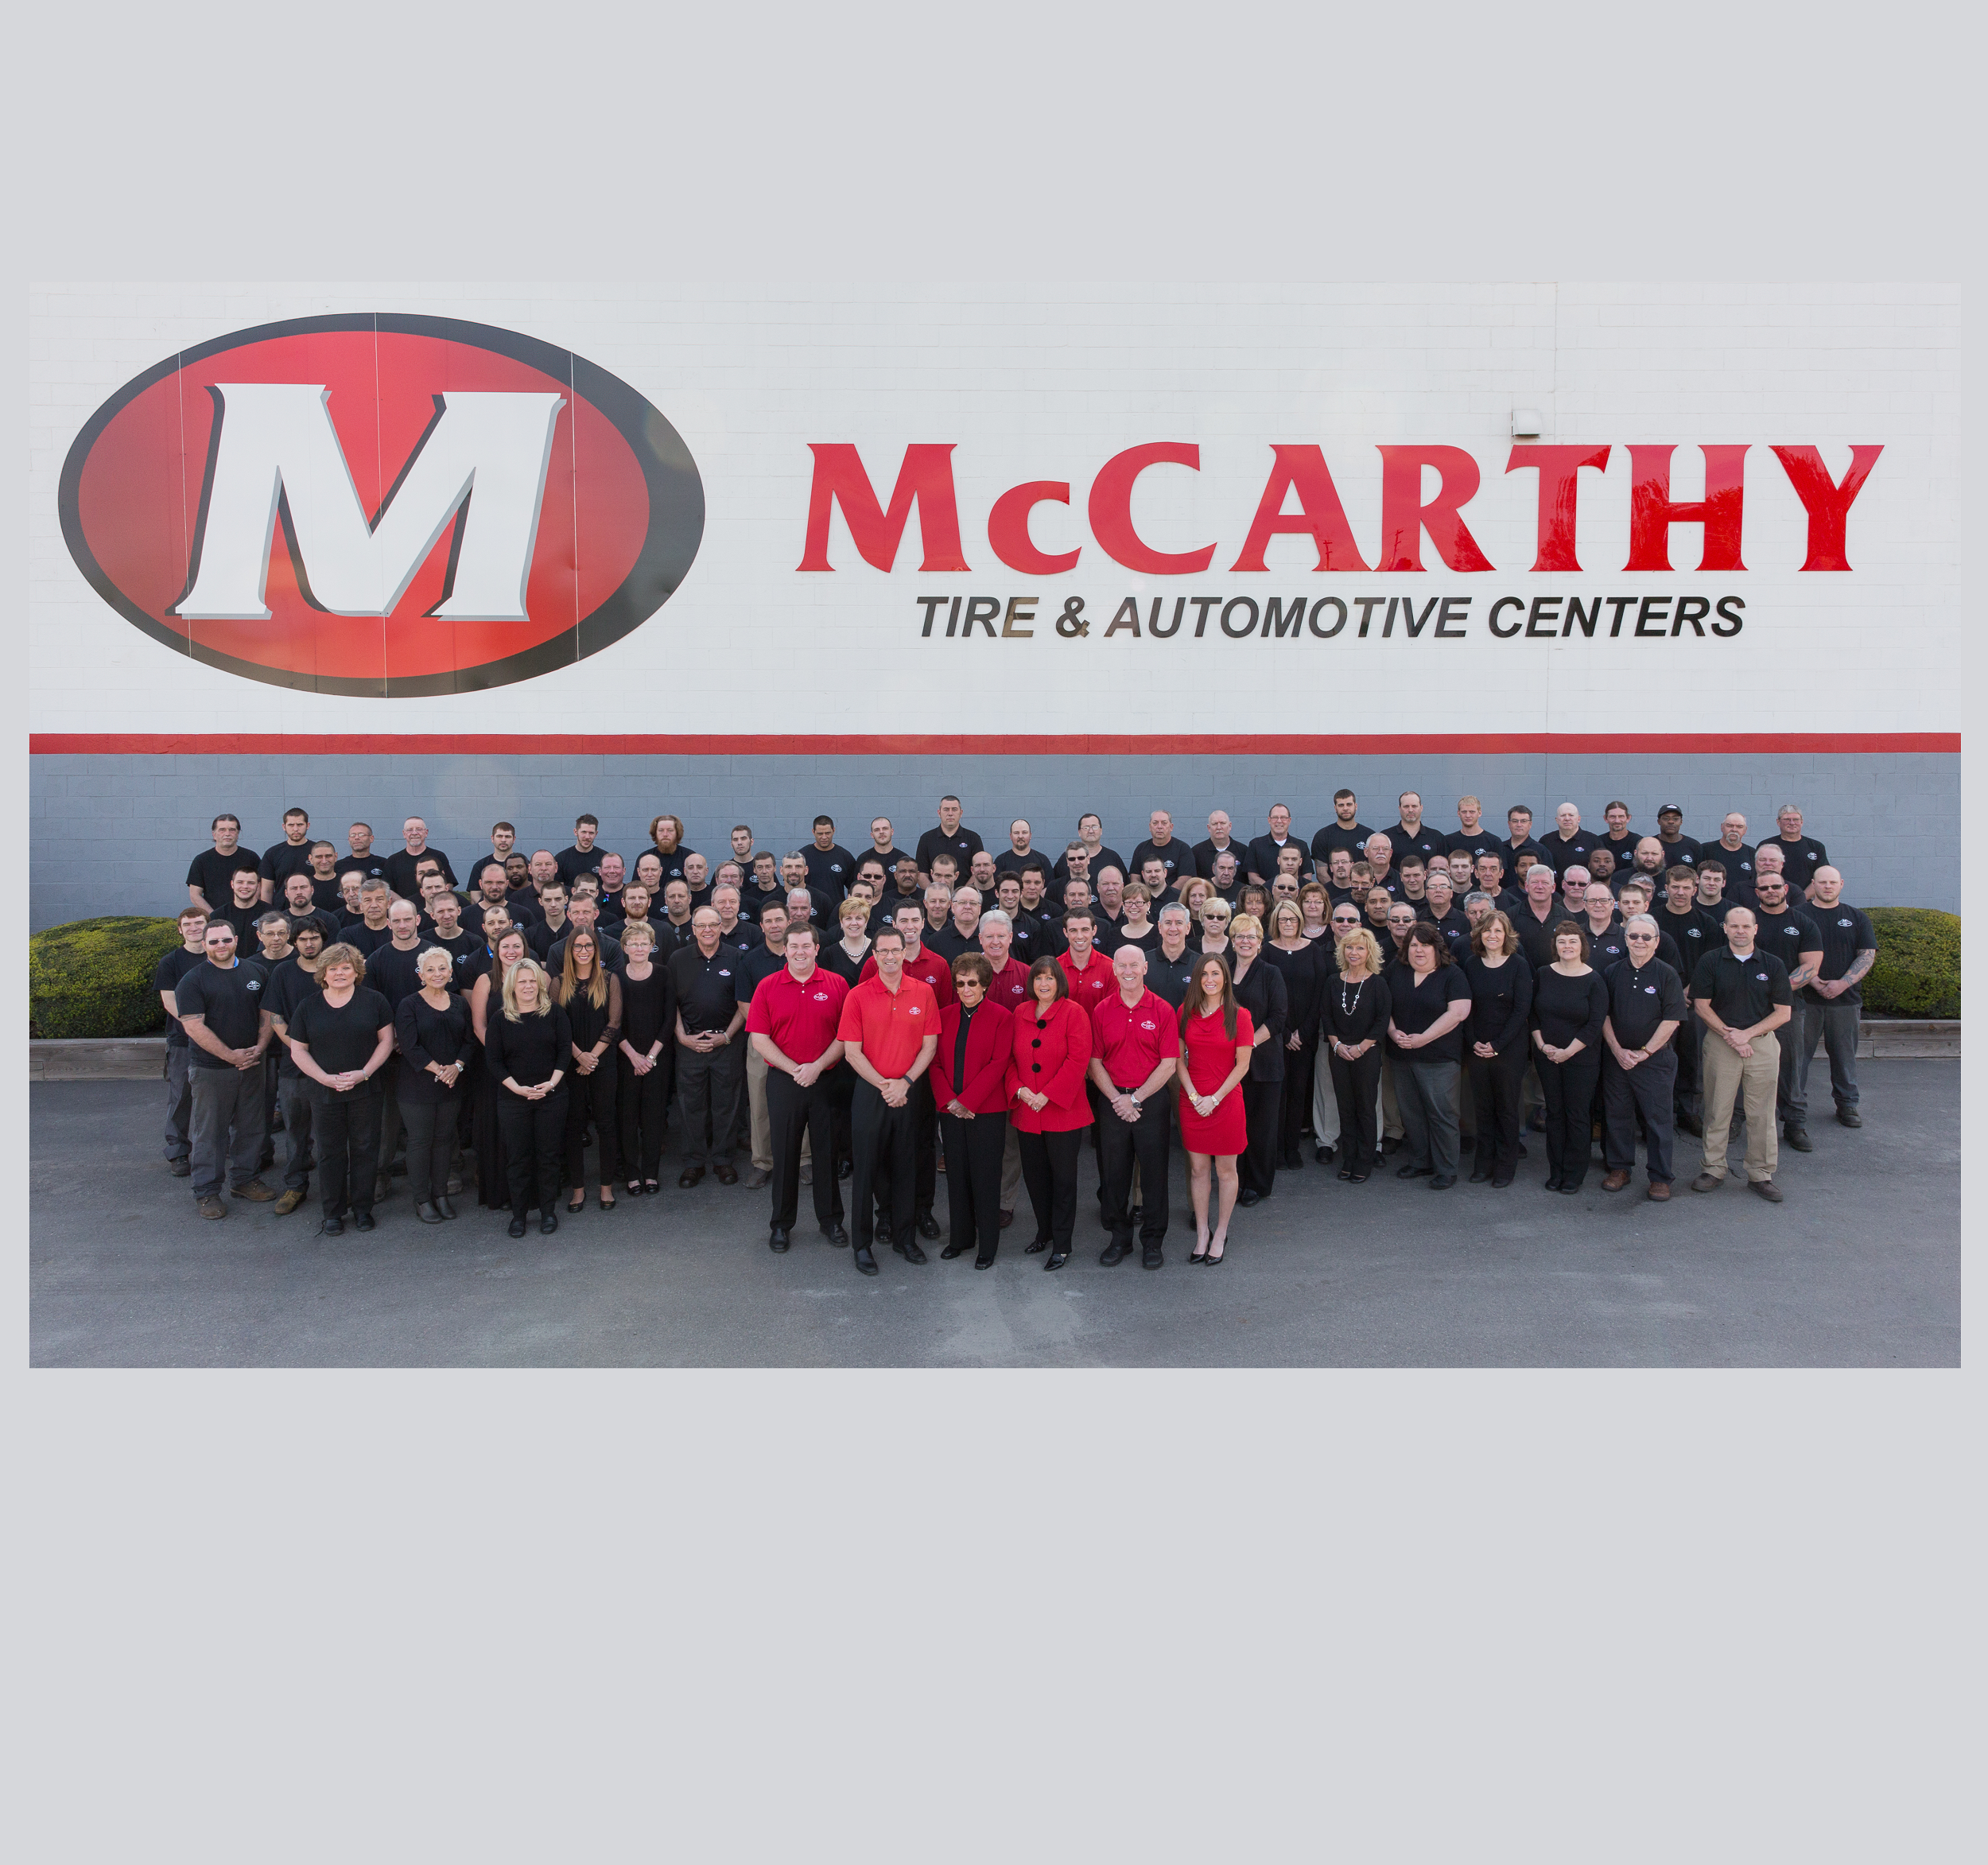 5 Things to Know About the Future of McCarthy Tire